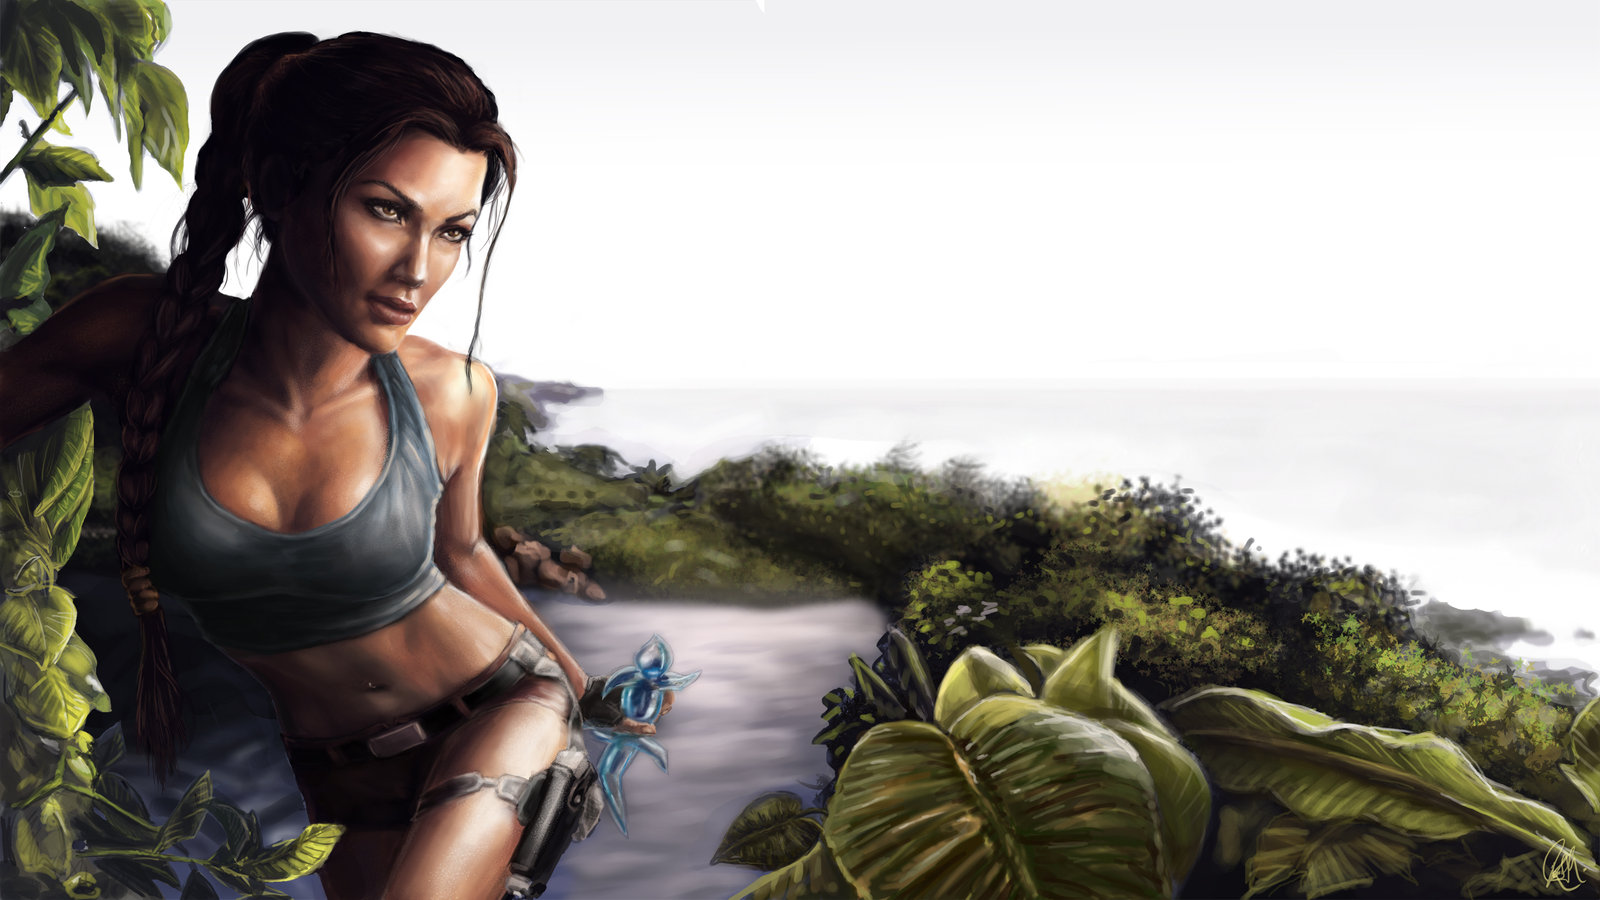 Tomb raider gif naked galleries